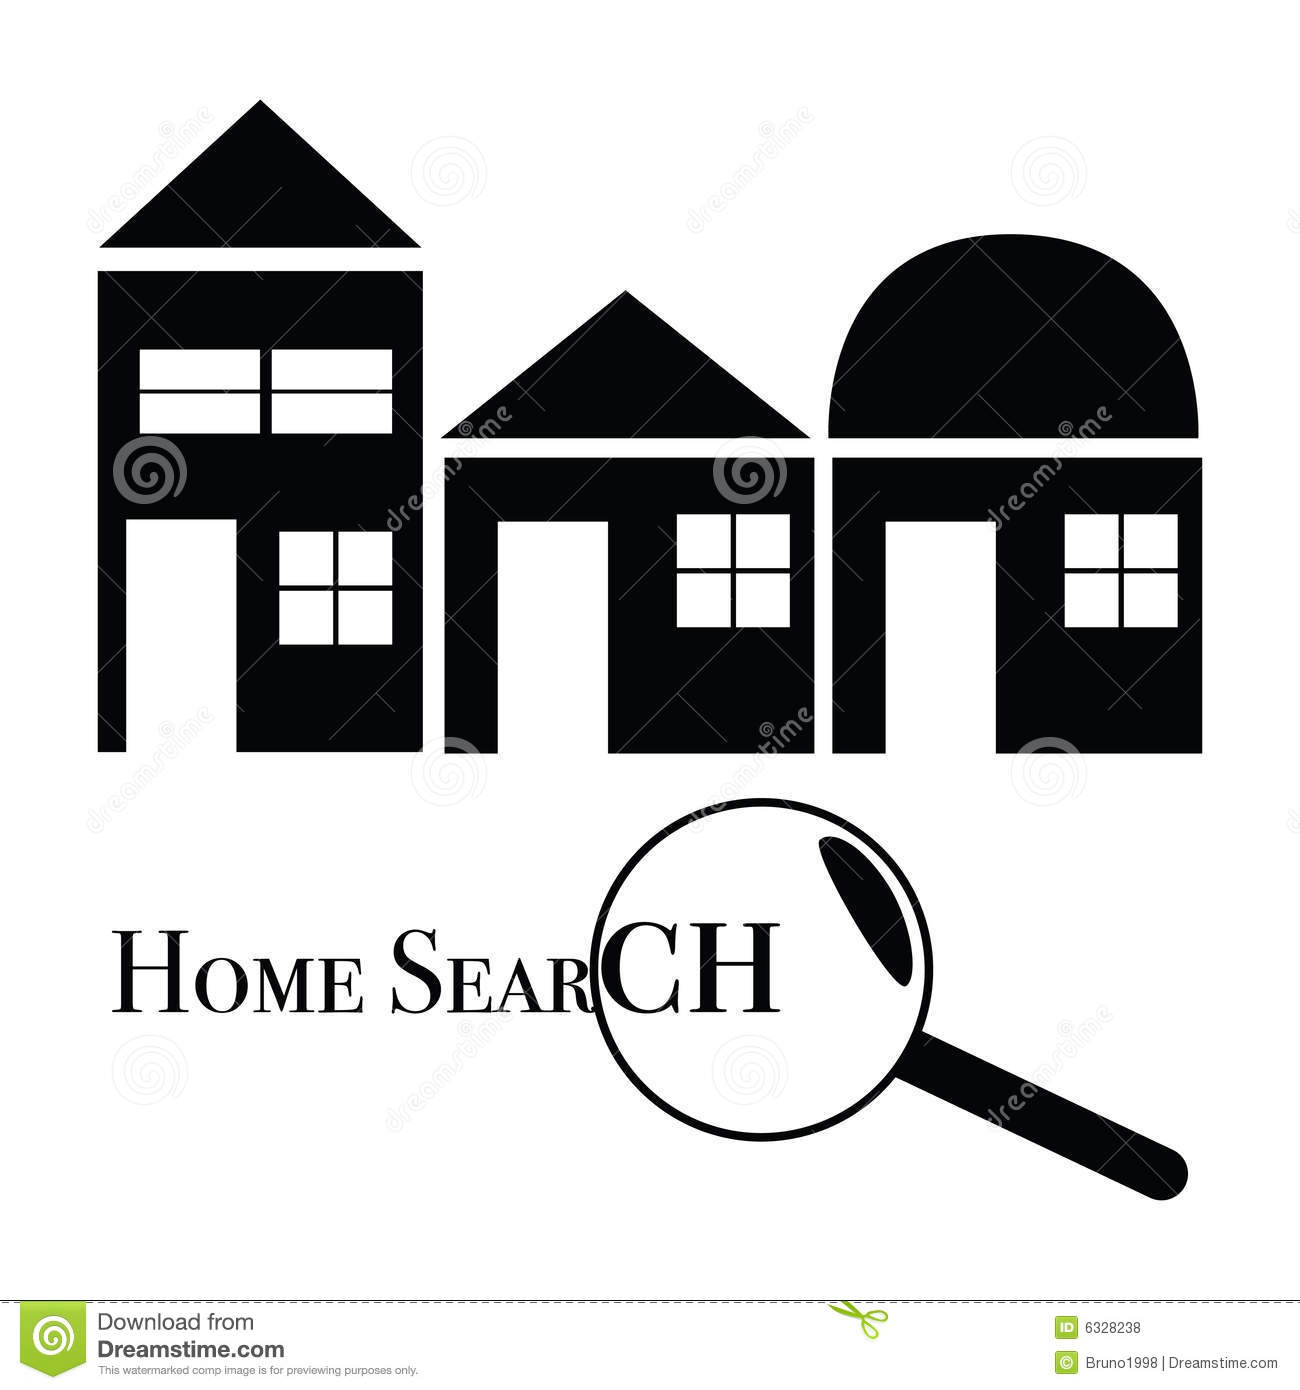 Home search royalty free stock photos image 6328238 for Free home search